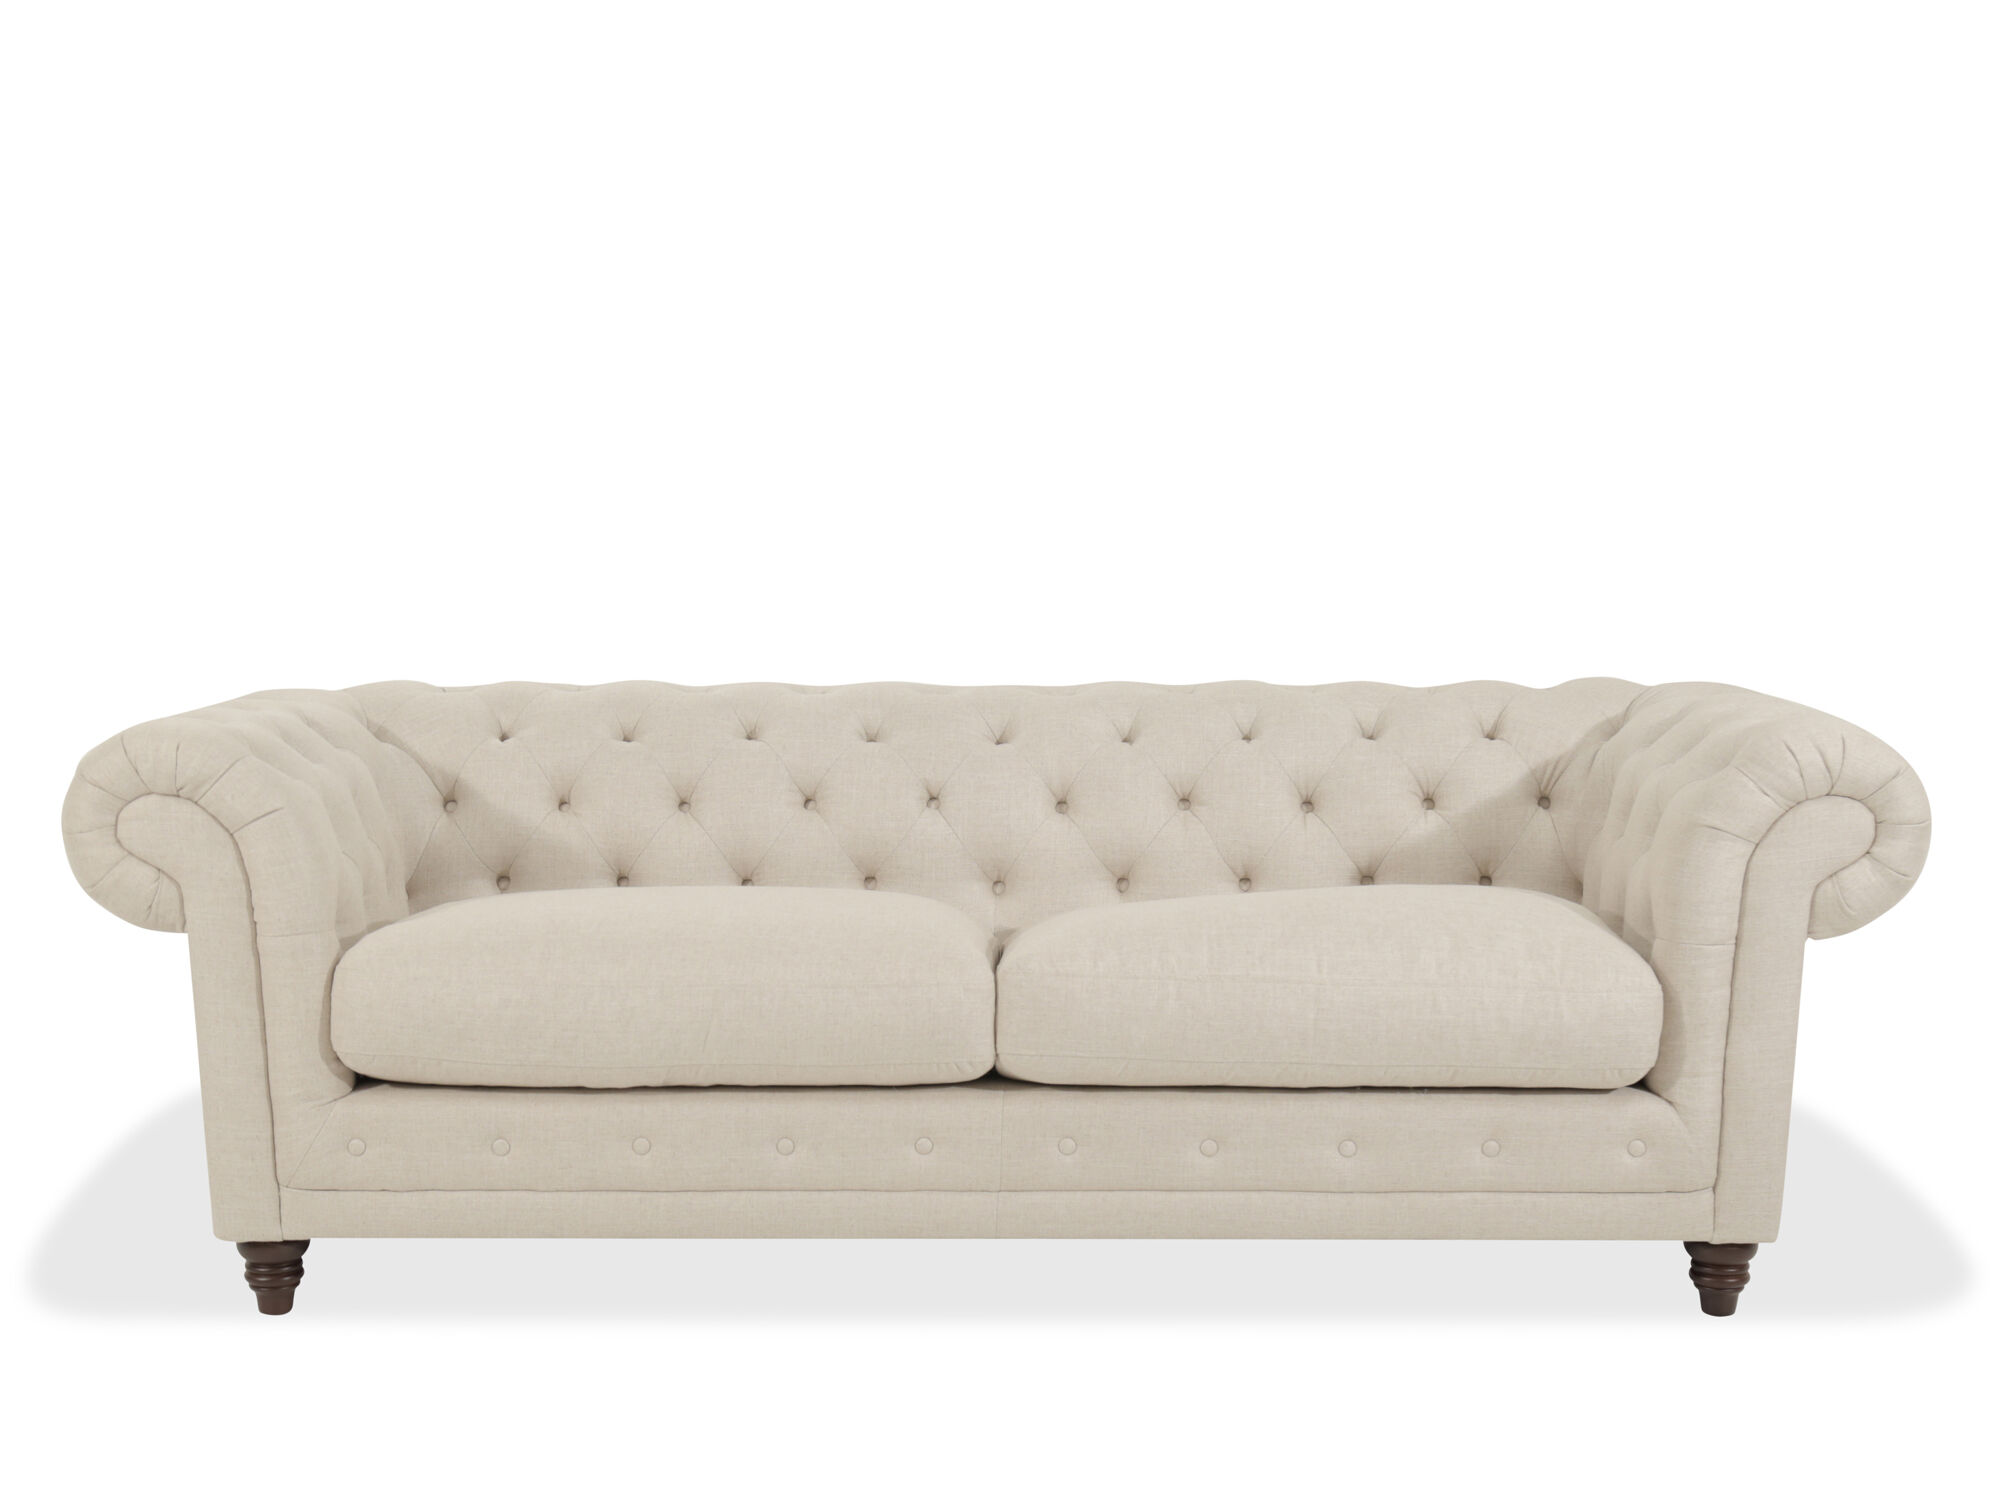 Images Button Tufted 93u0026quot; Rolled Arm Sofa In Beige Button Tufted  93u0026quot; Rolled Arm Sofa In Beige